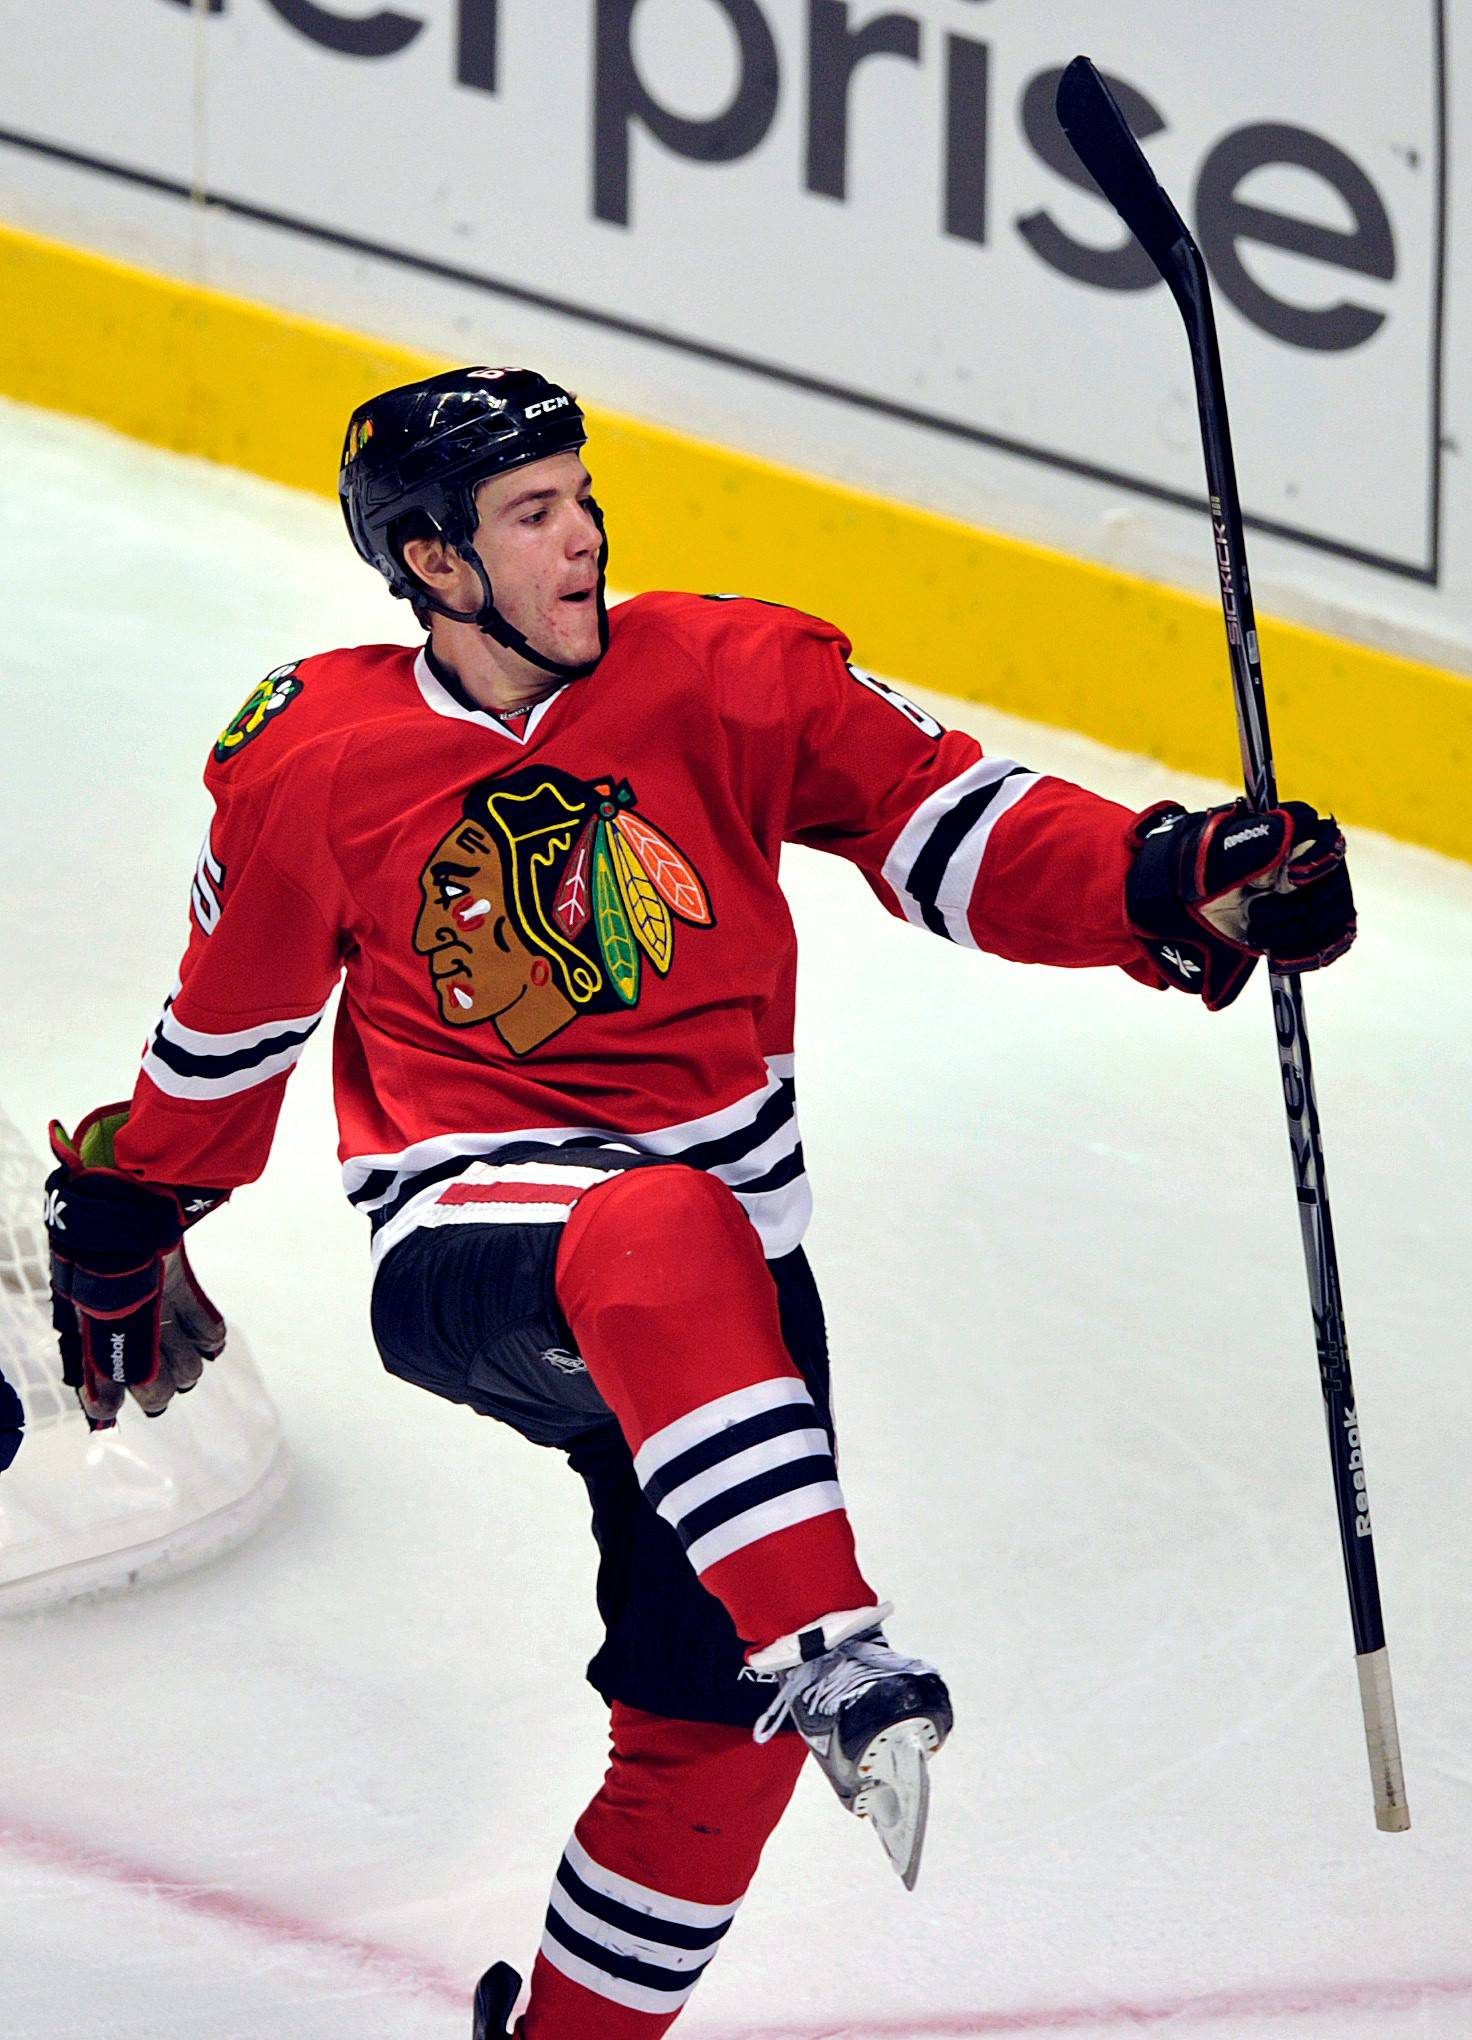 Andrew Shaw said Saturday that he felt like he was close to making a deal with the Blackhawks, but in the end the parties couldn't make out a deal. He is looking forward to a fresh start in Montreal.